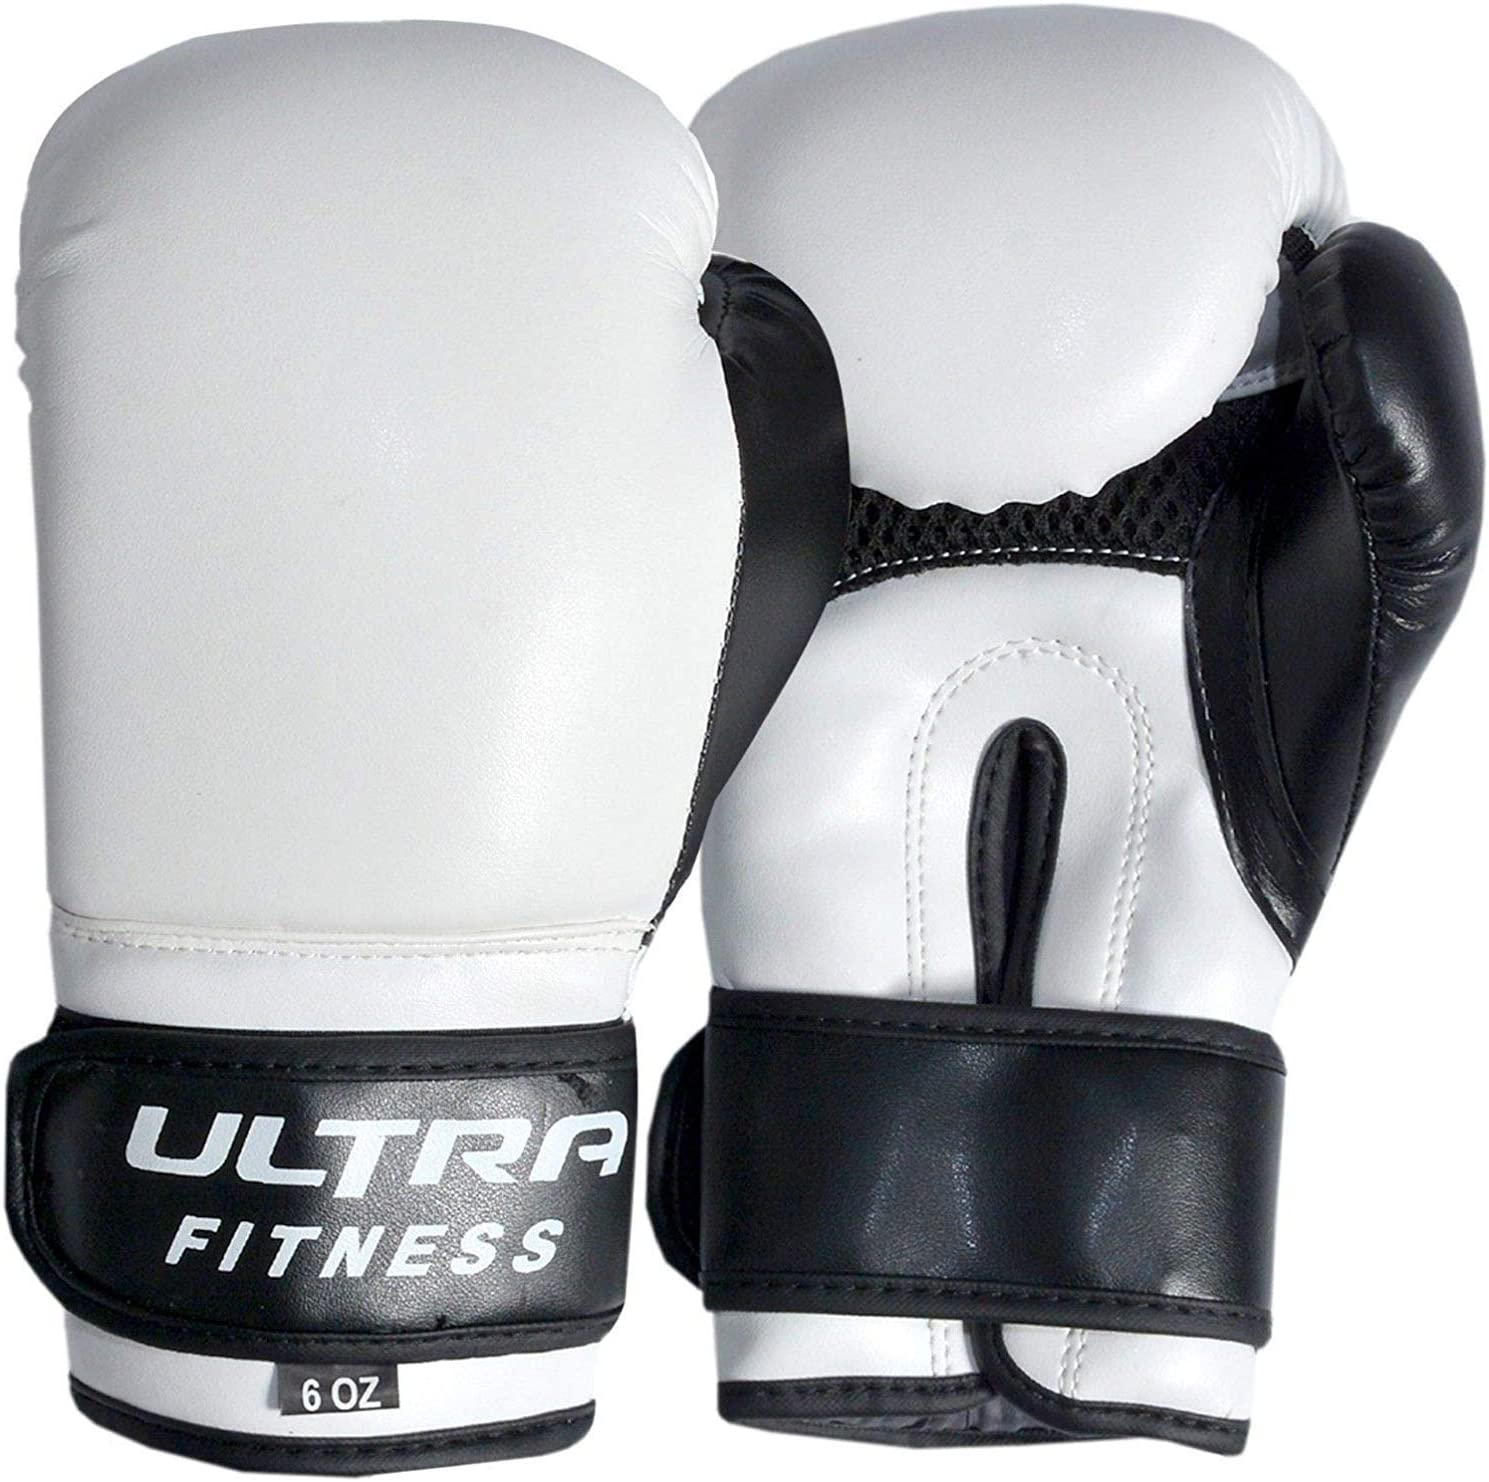 Junior Heavy Filled ULTRA FITNESS Kids Boxing Punch Bag Set with 6oz Gloves Hand Wraps Skipping Rope /& Chain